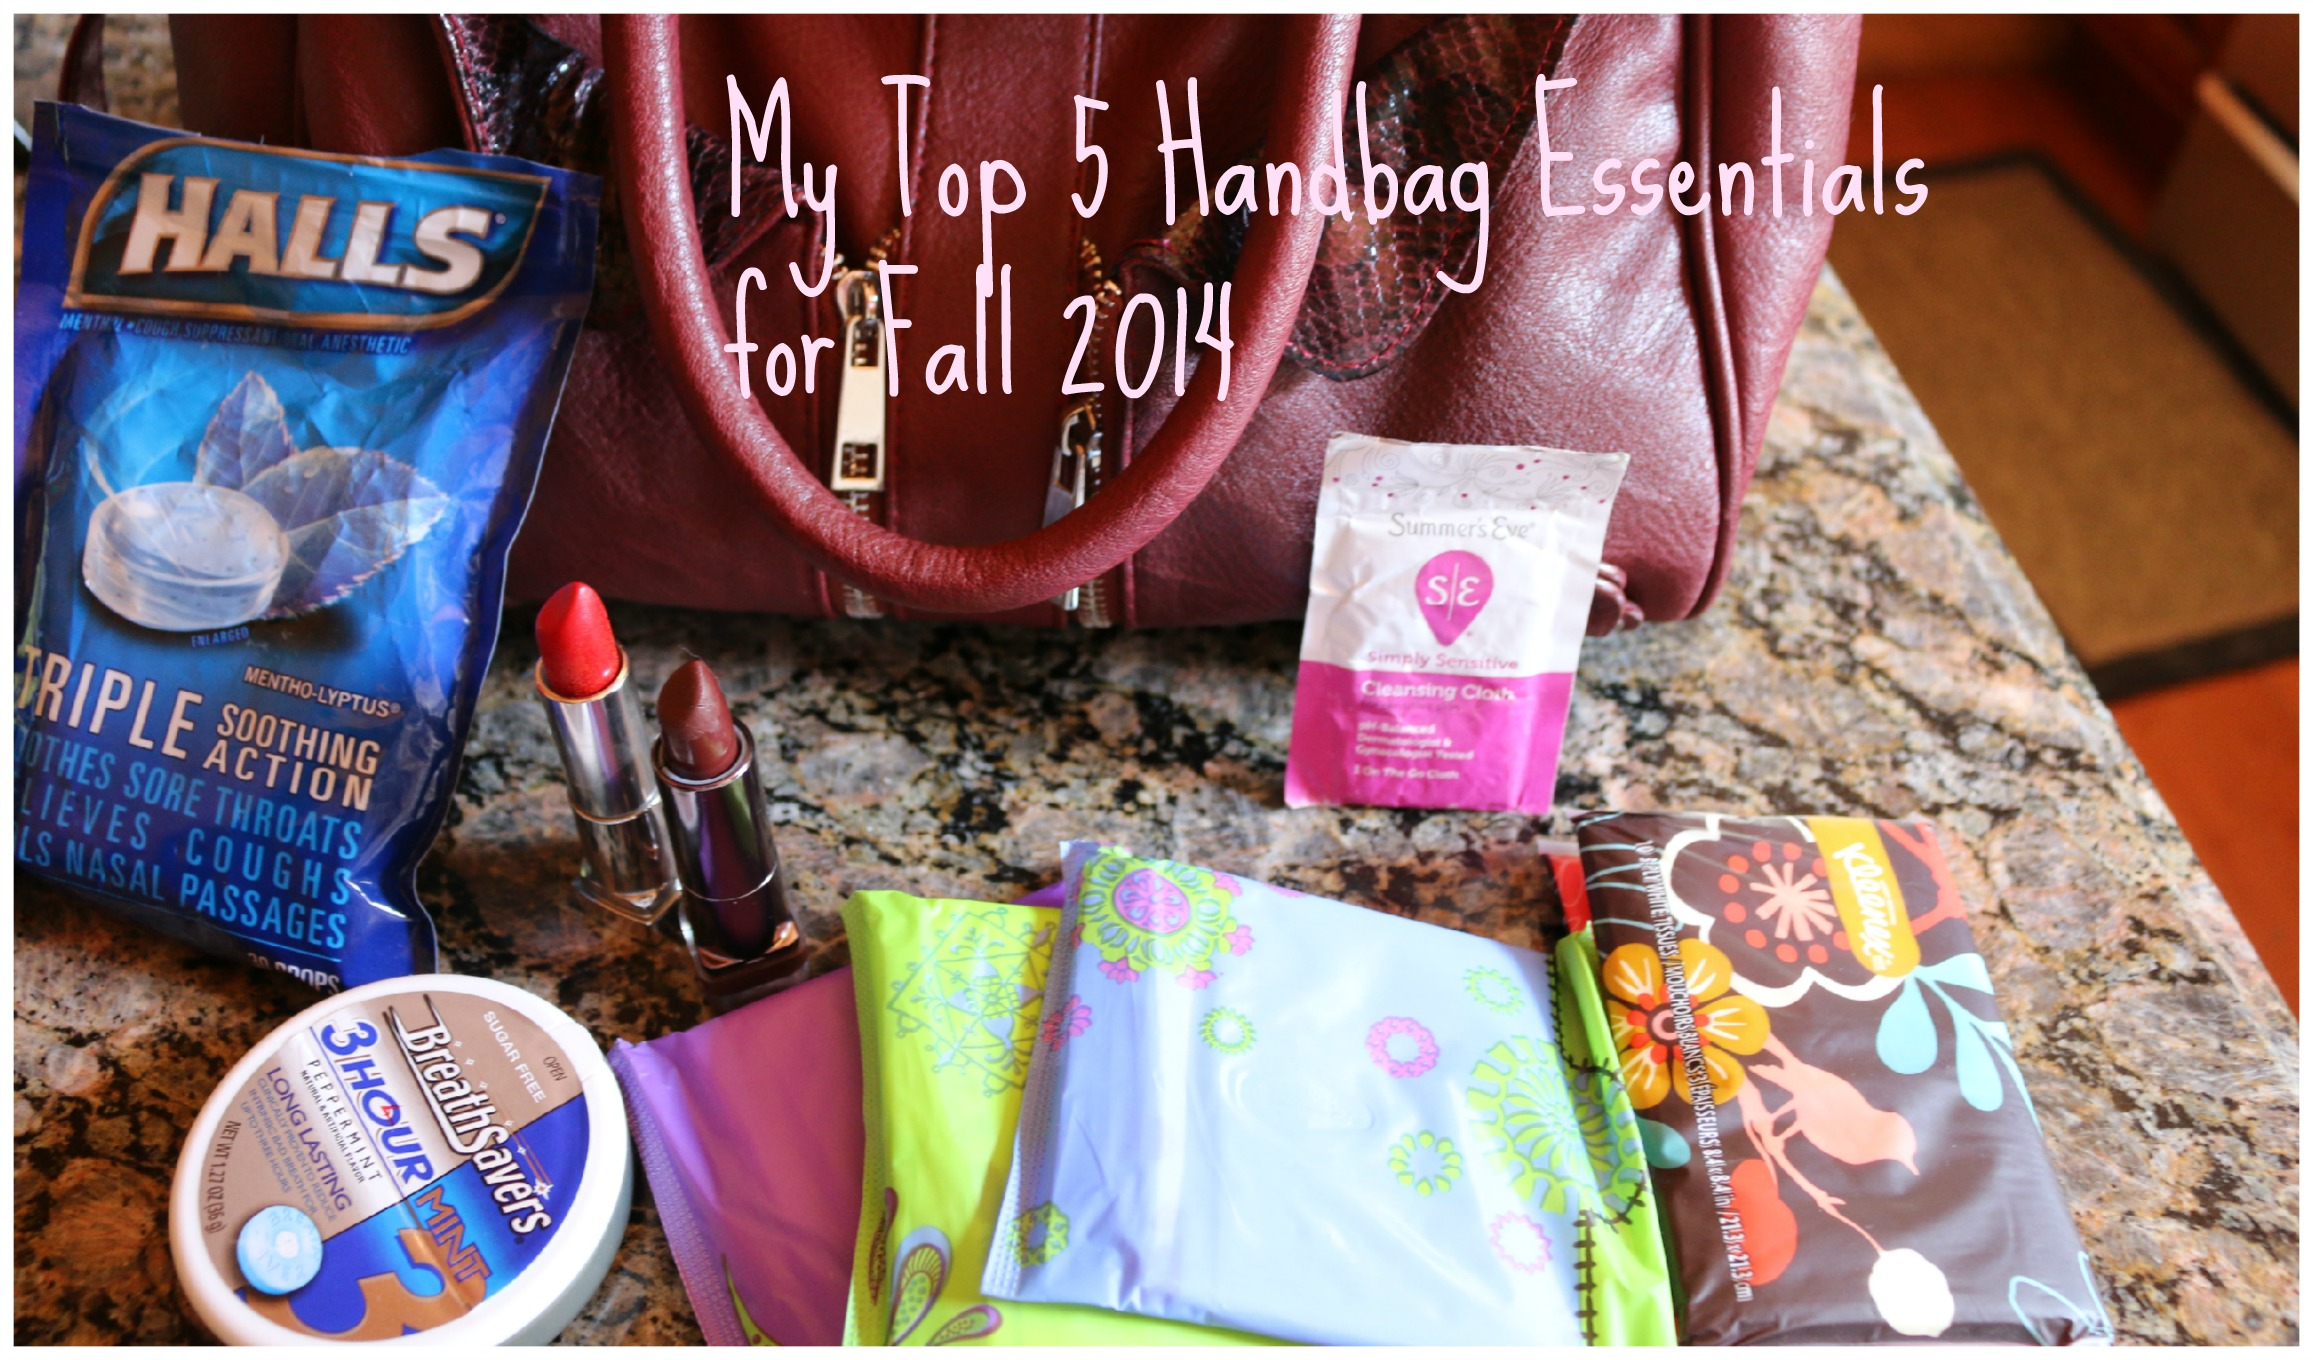 My Top 5 Handbag Essentials for Fall 2014